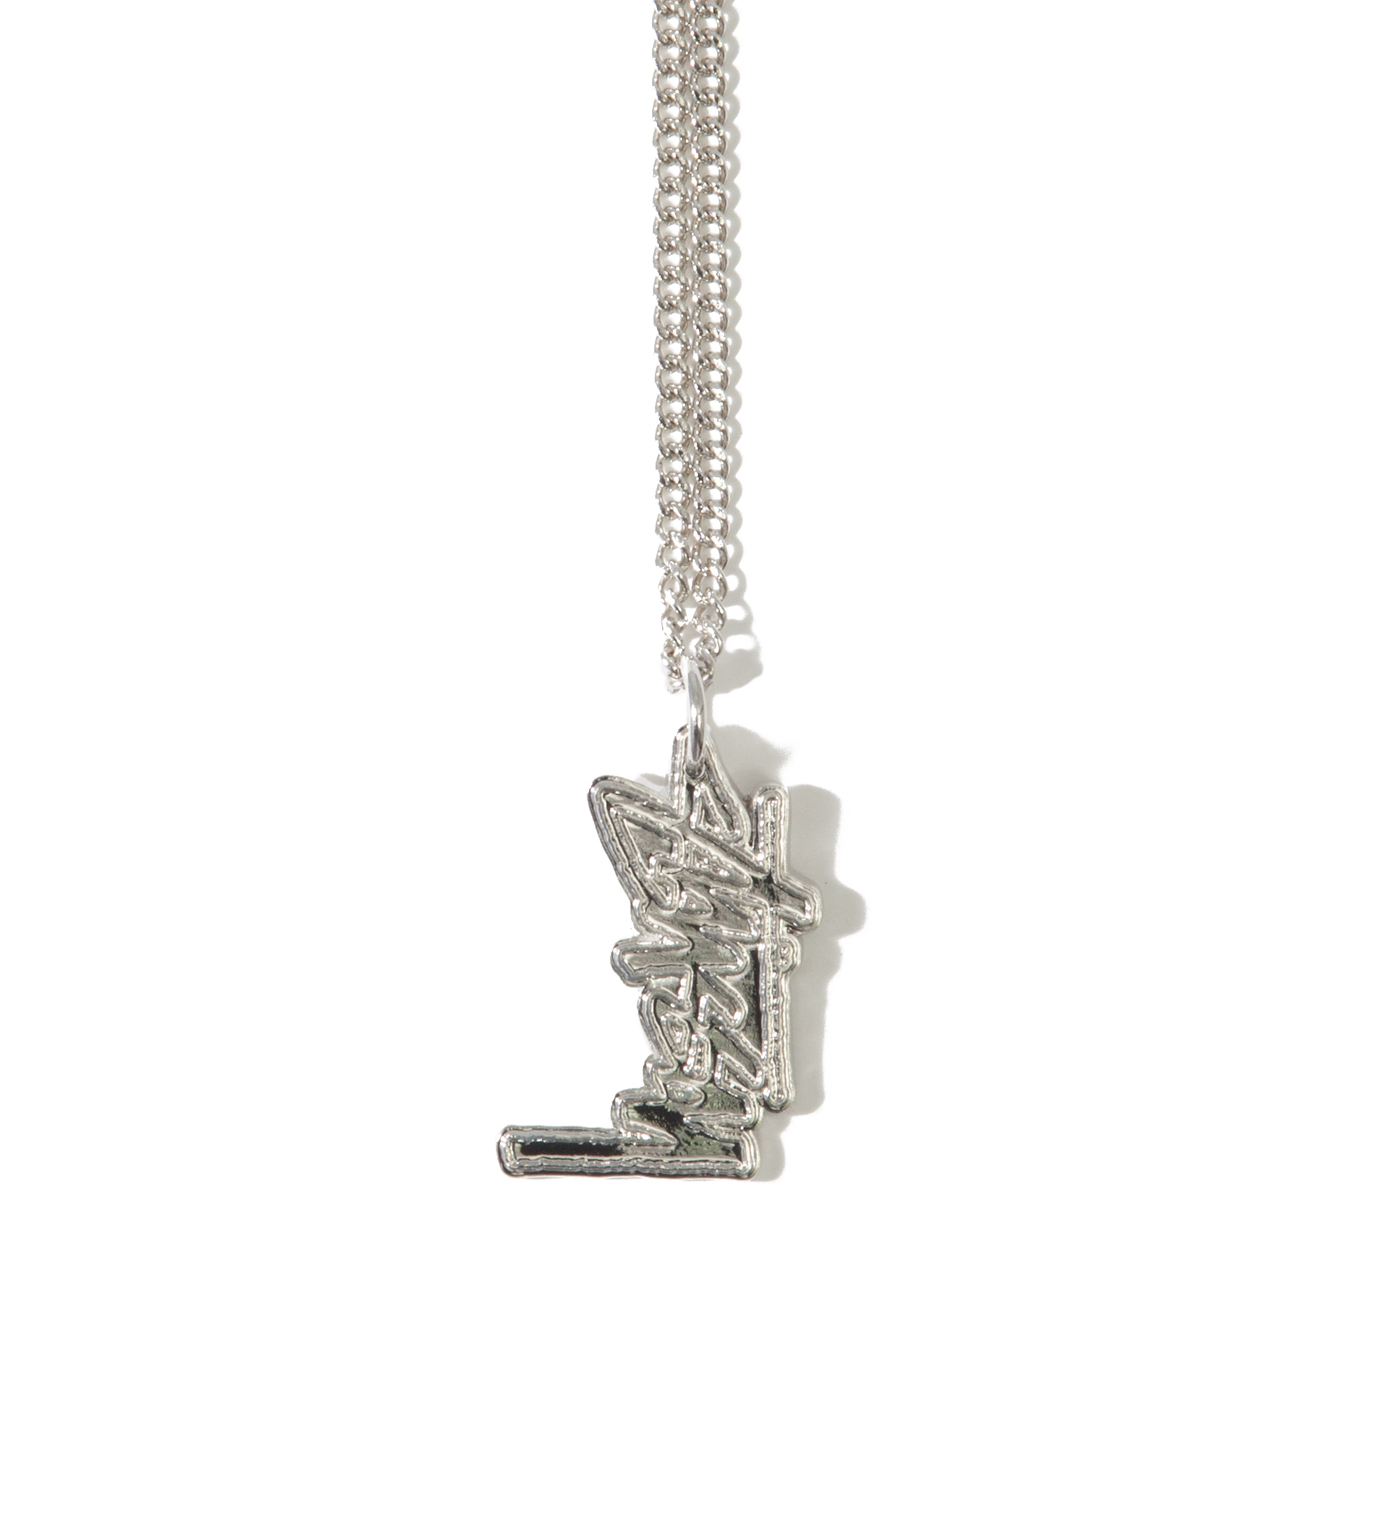 Stussy Silver Stock Link Necklace